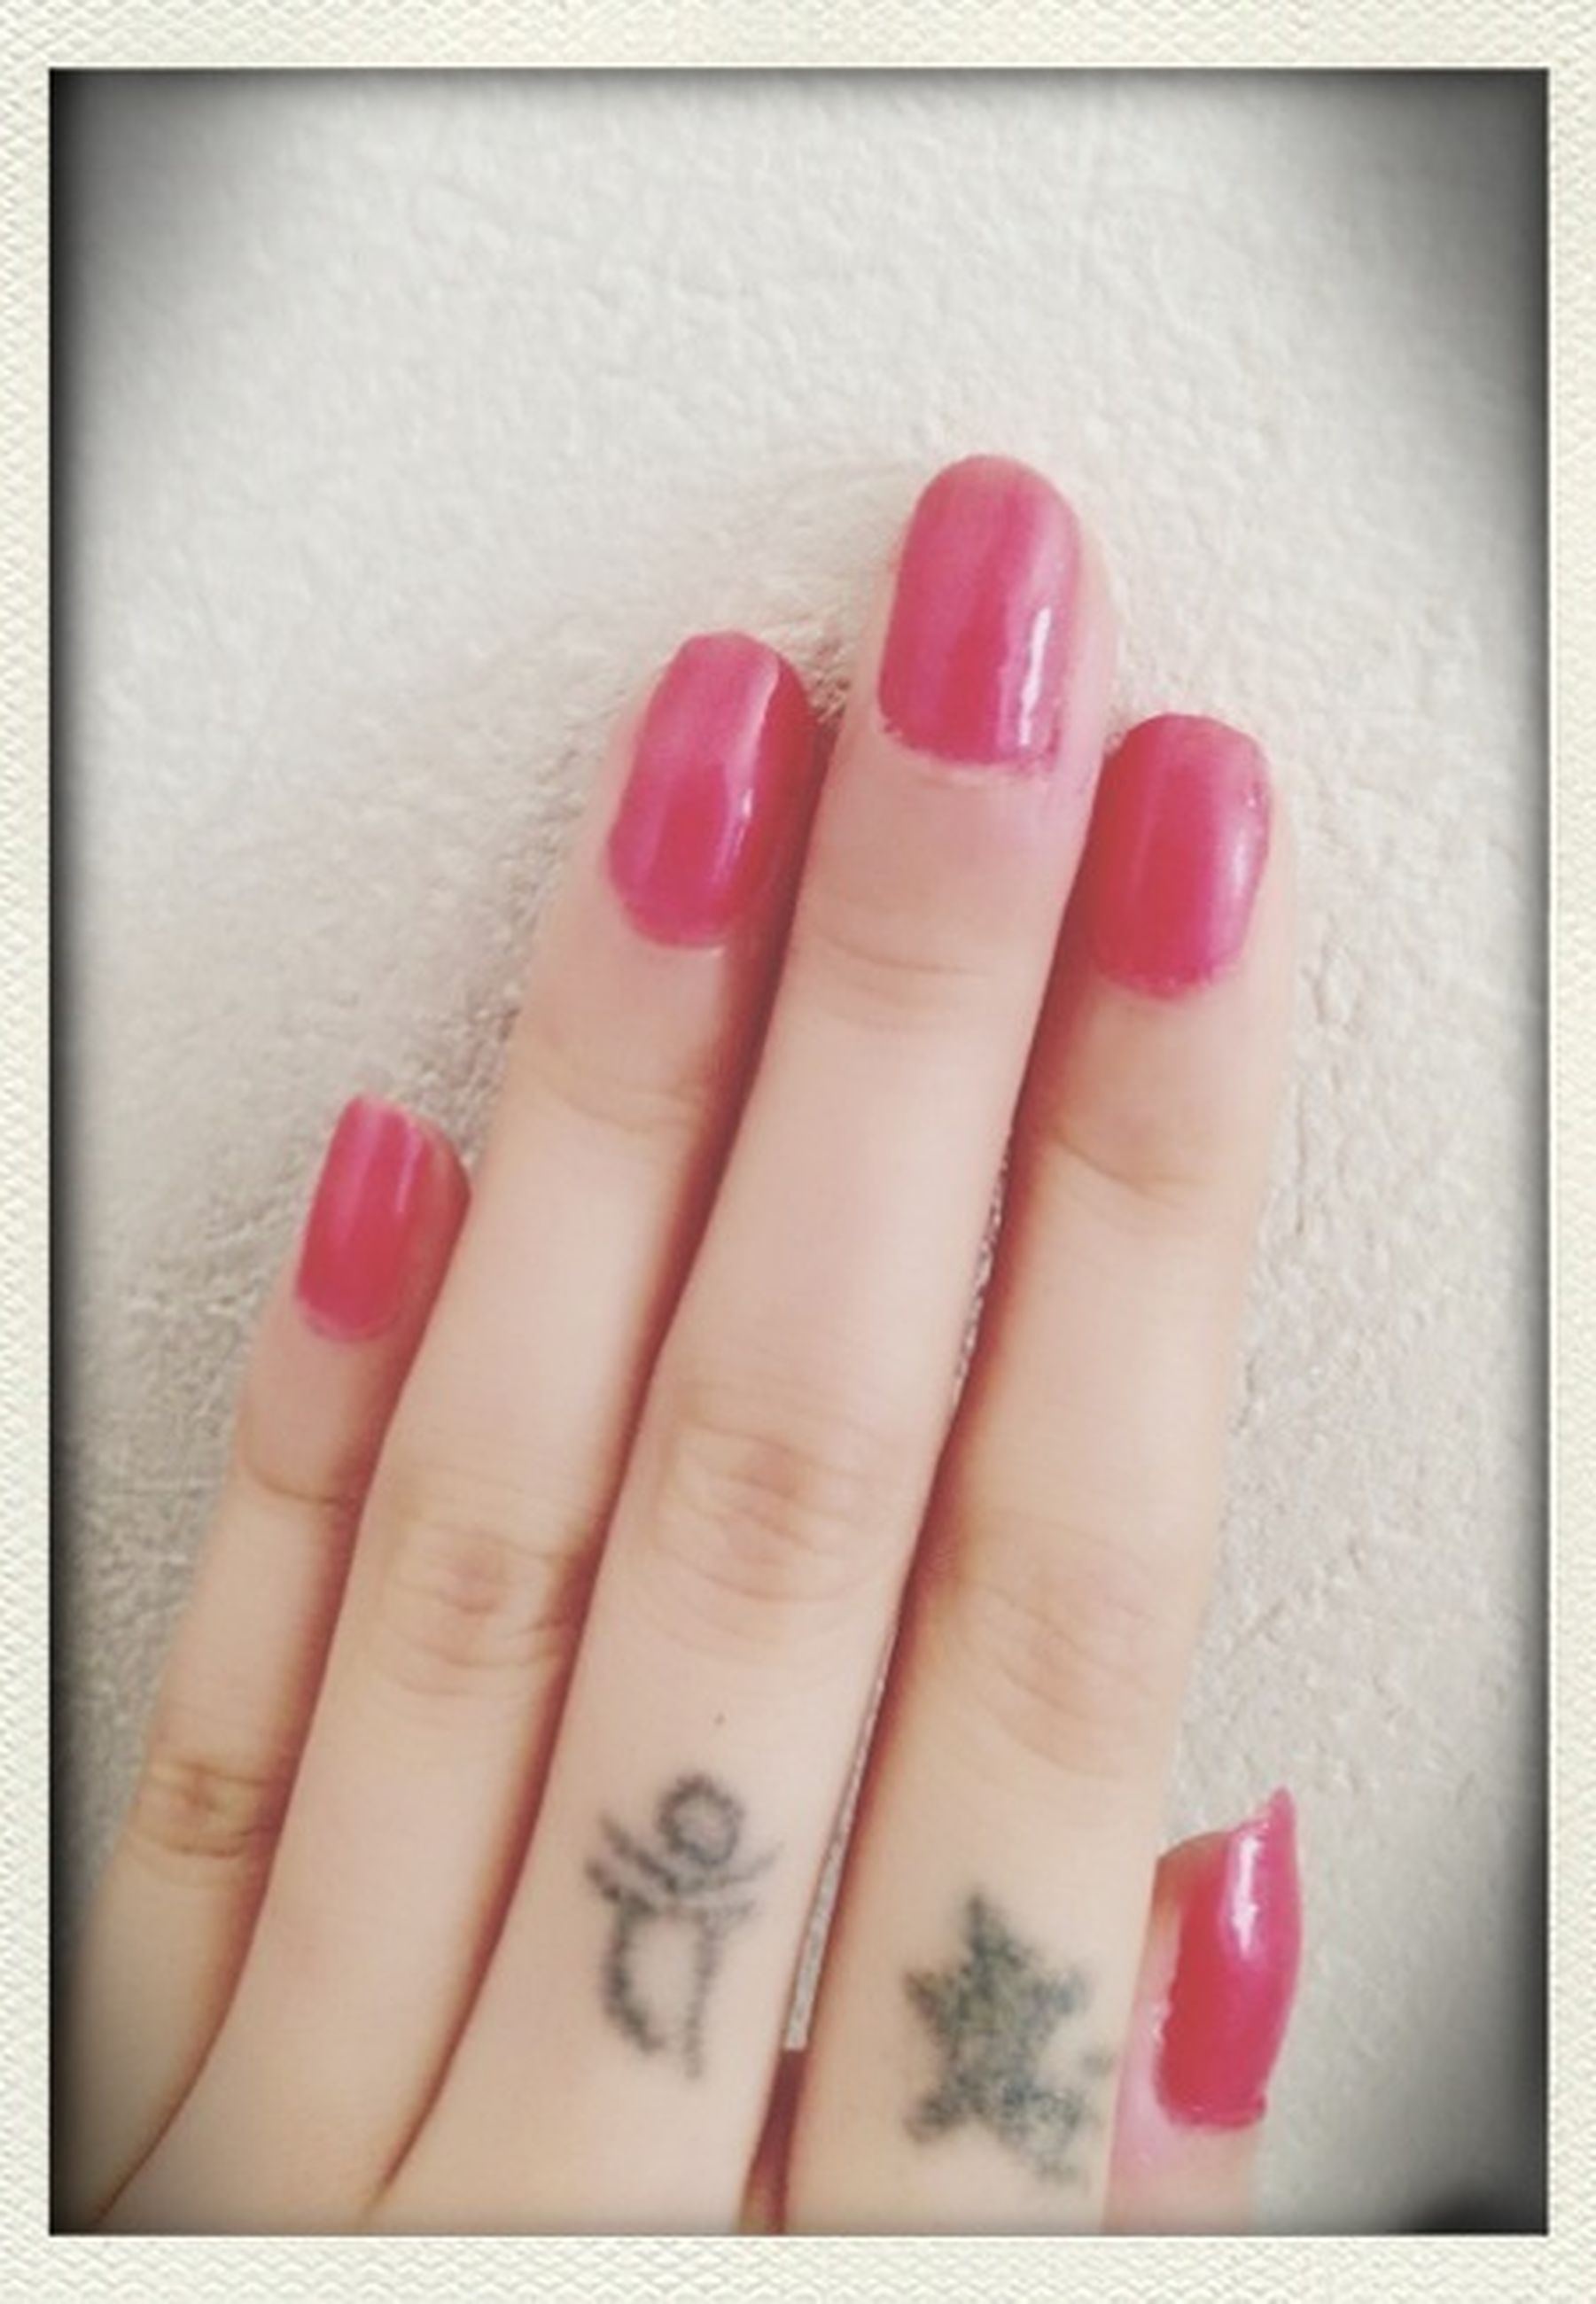 person, indoors, part of, red, transfer print, close-up, human finger, auto post production filter, cropped, pink color, high angle view, nail polish, holding, studio shot, table, multi colored, unrecognizable person